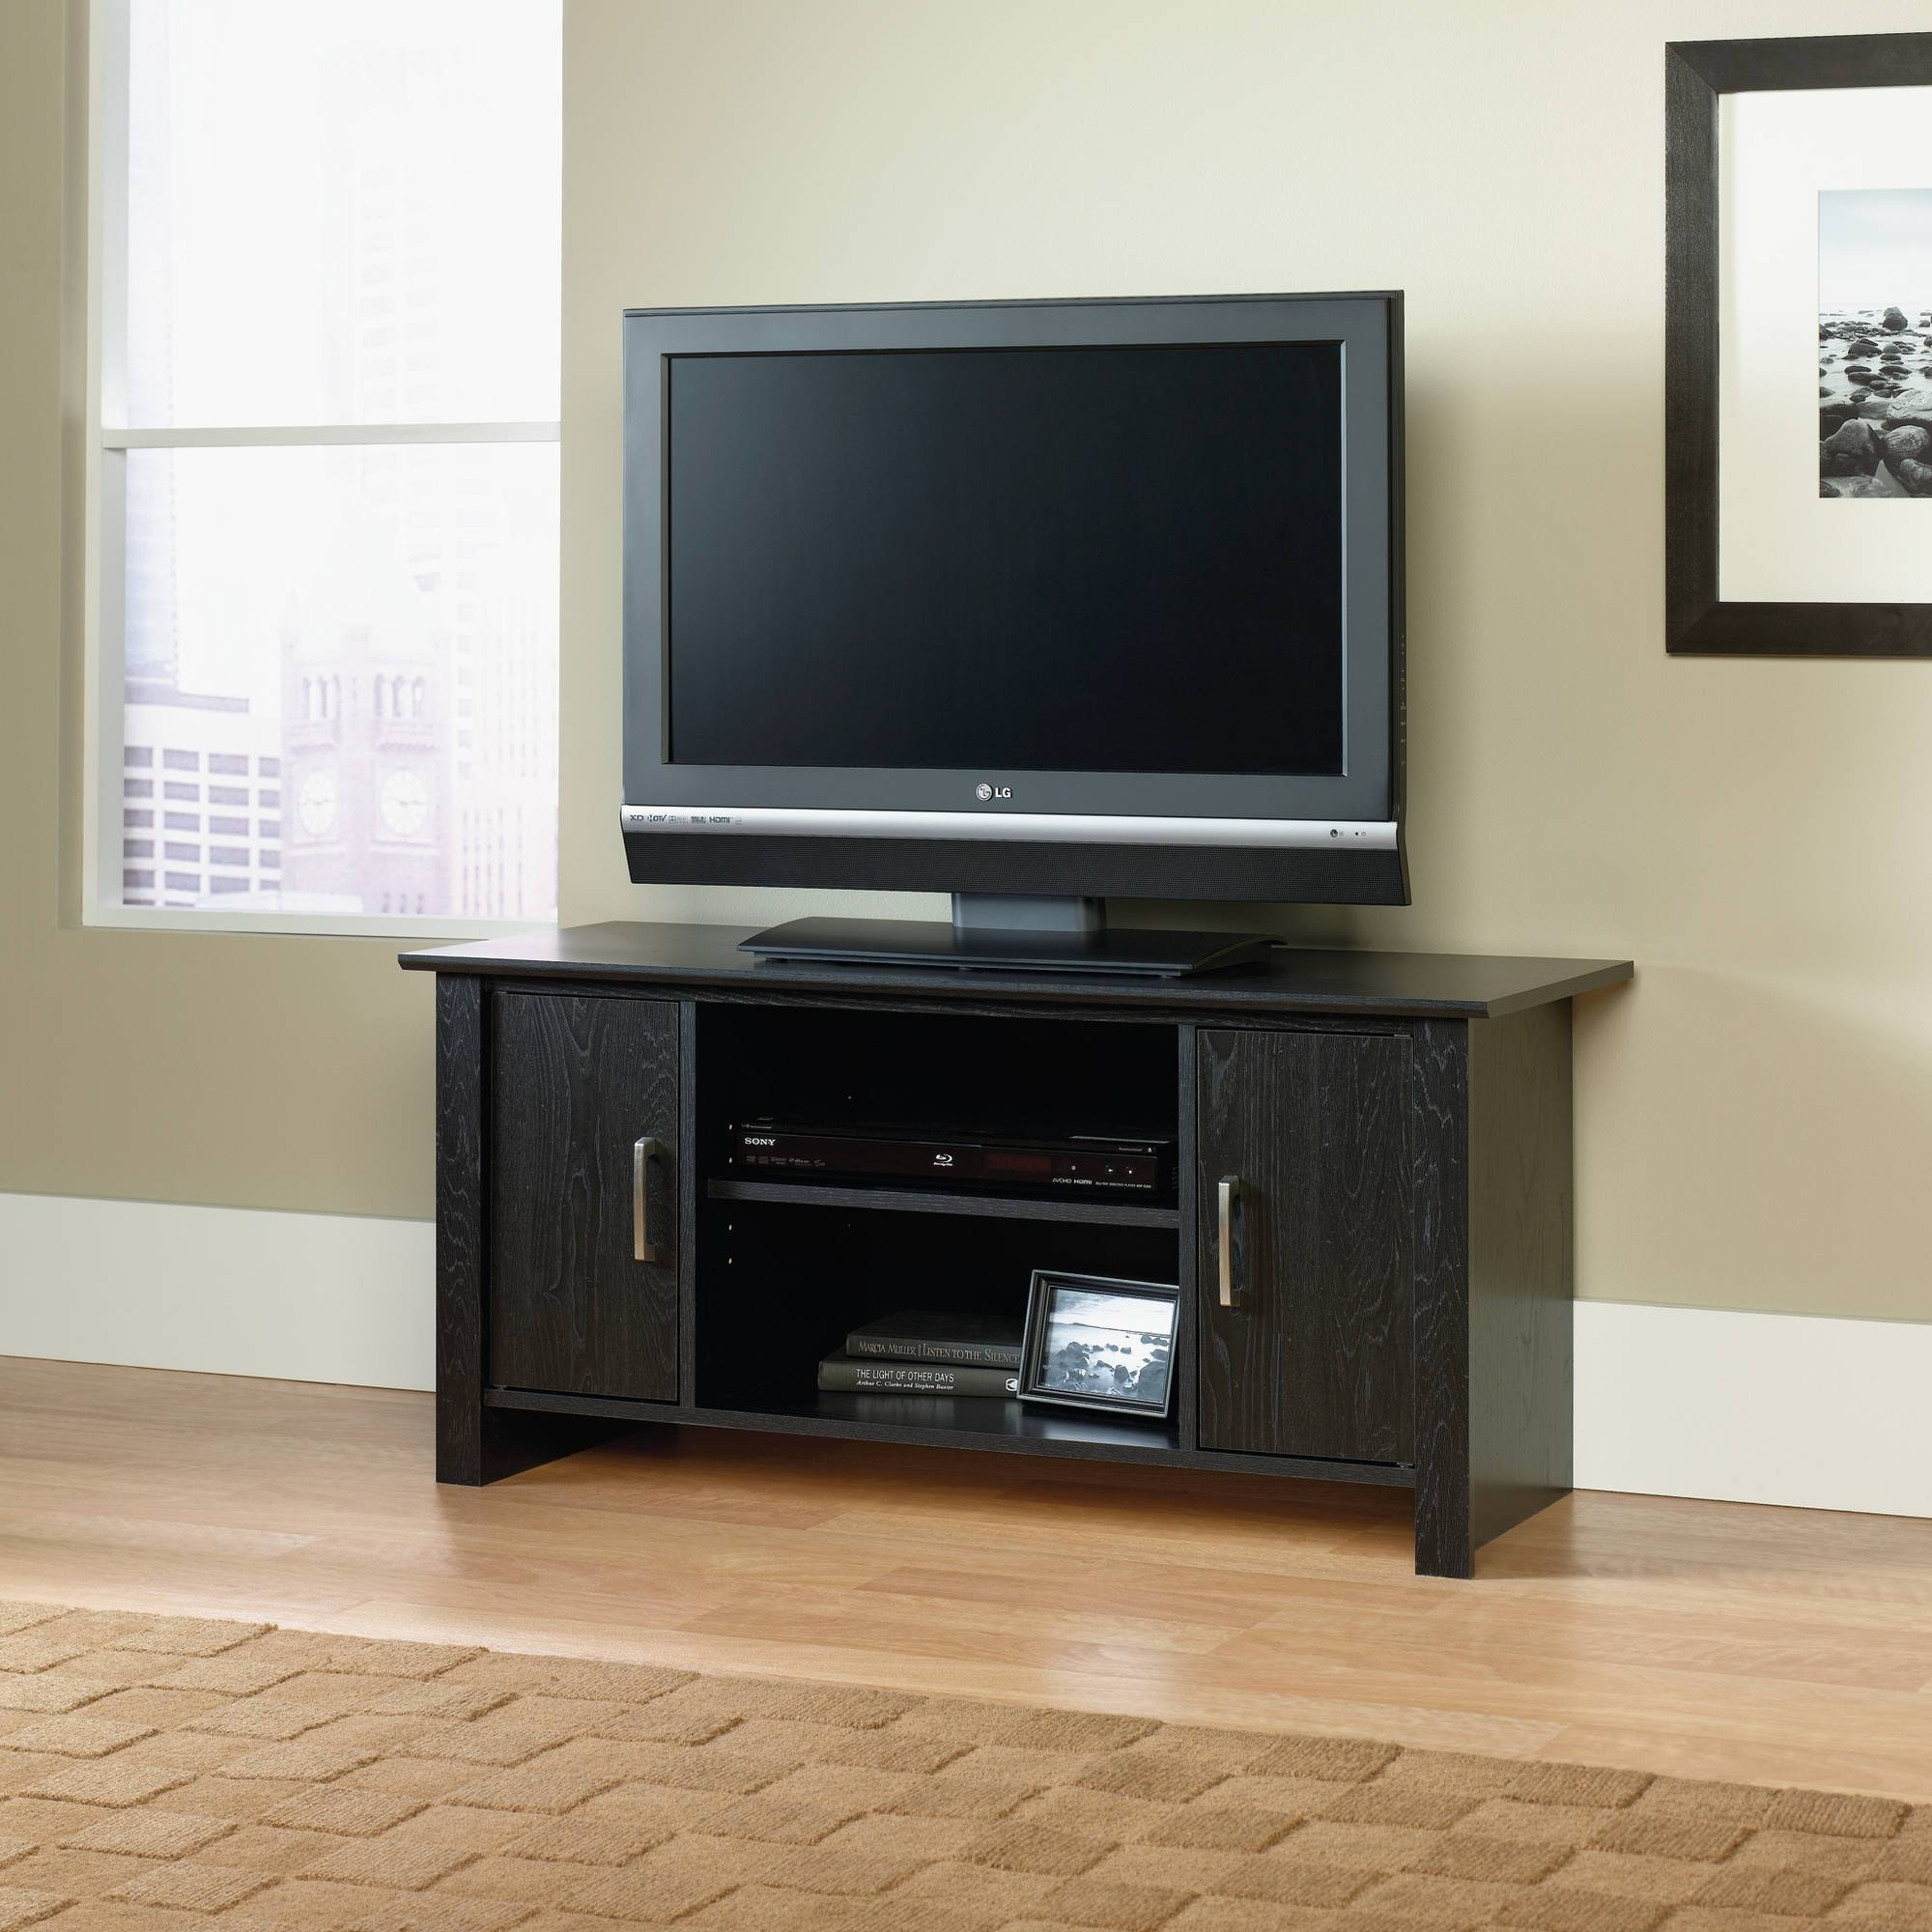 Wall Shelves Design: Best Wall Shelves For Tv Accecories Wall Throughout Rectangular Tv Stands (View 11 of 15)